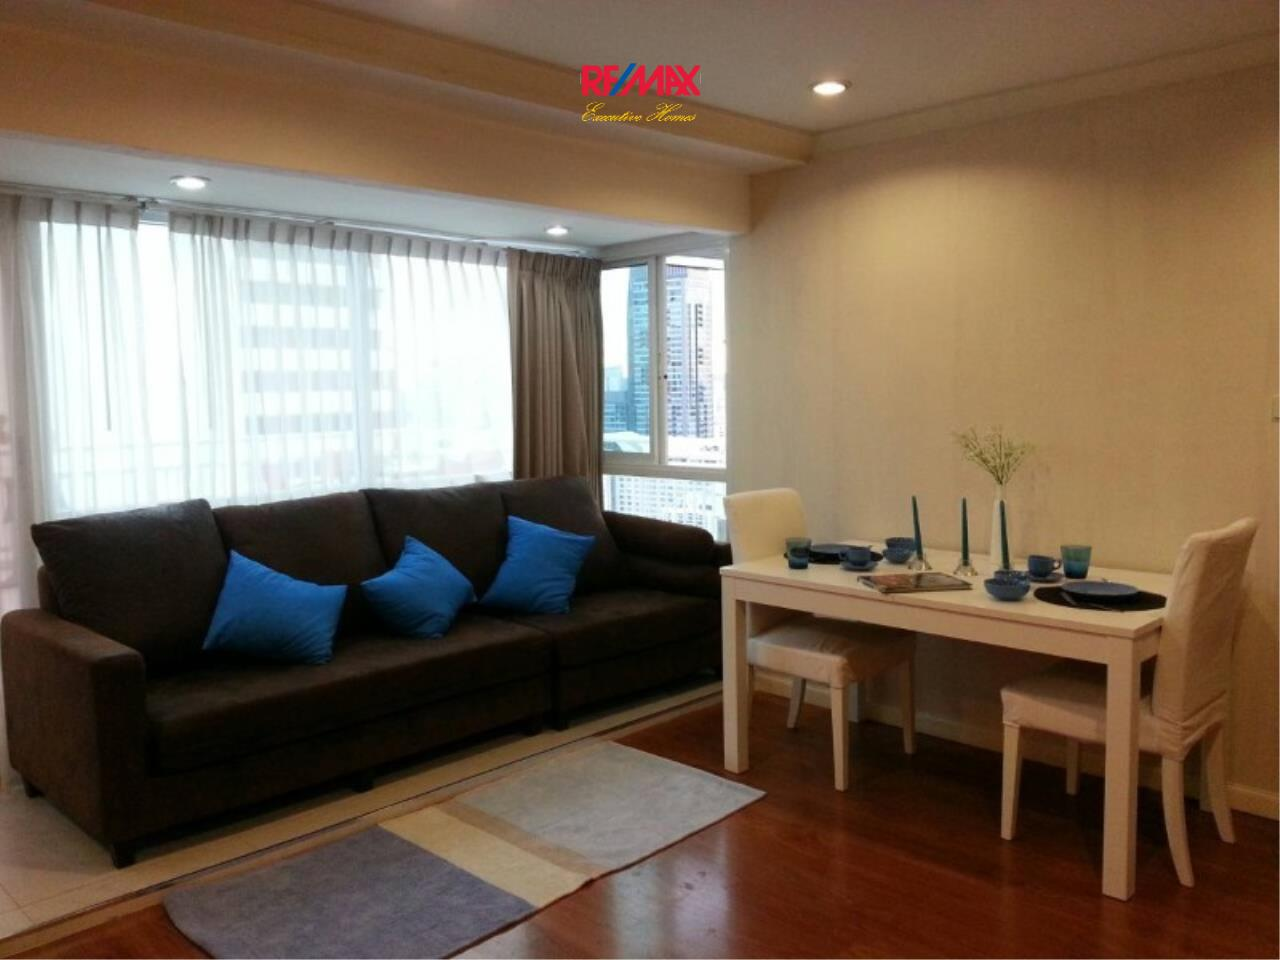 RE/MAX Executive Homes Agency's Spacious 2 Bedroom for Rent Grand Park View Asoke 1